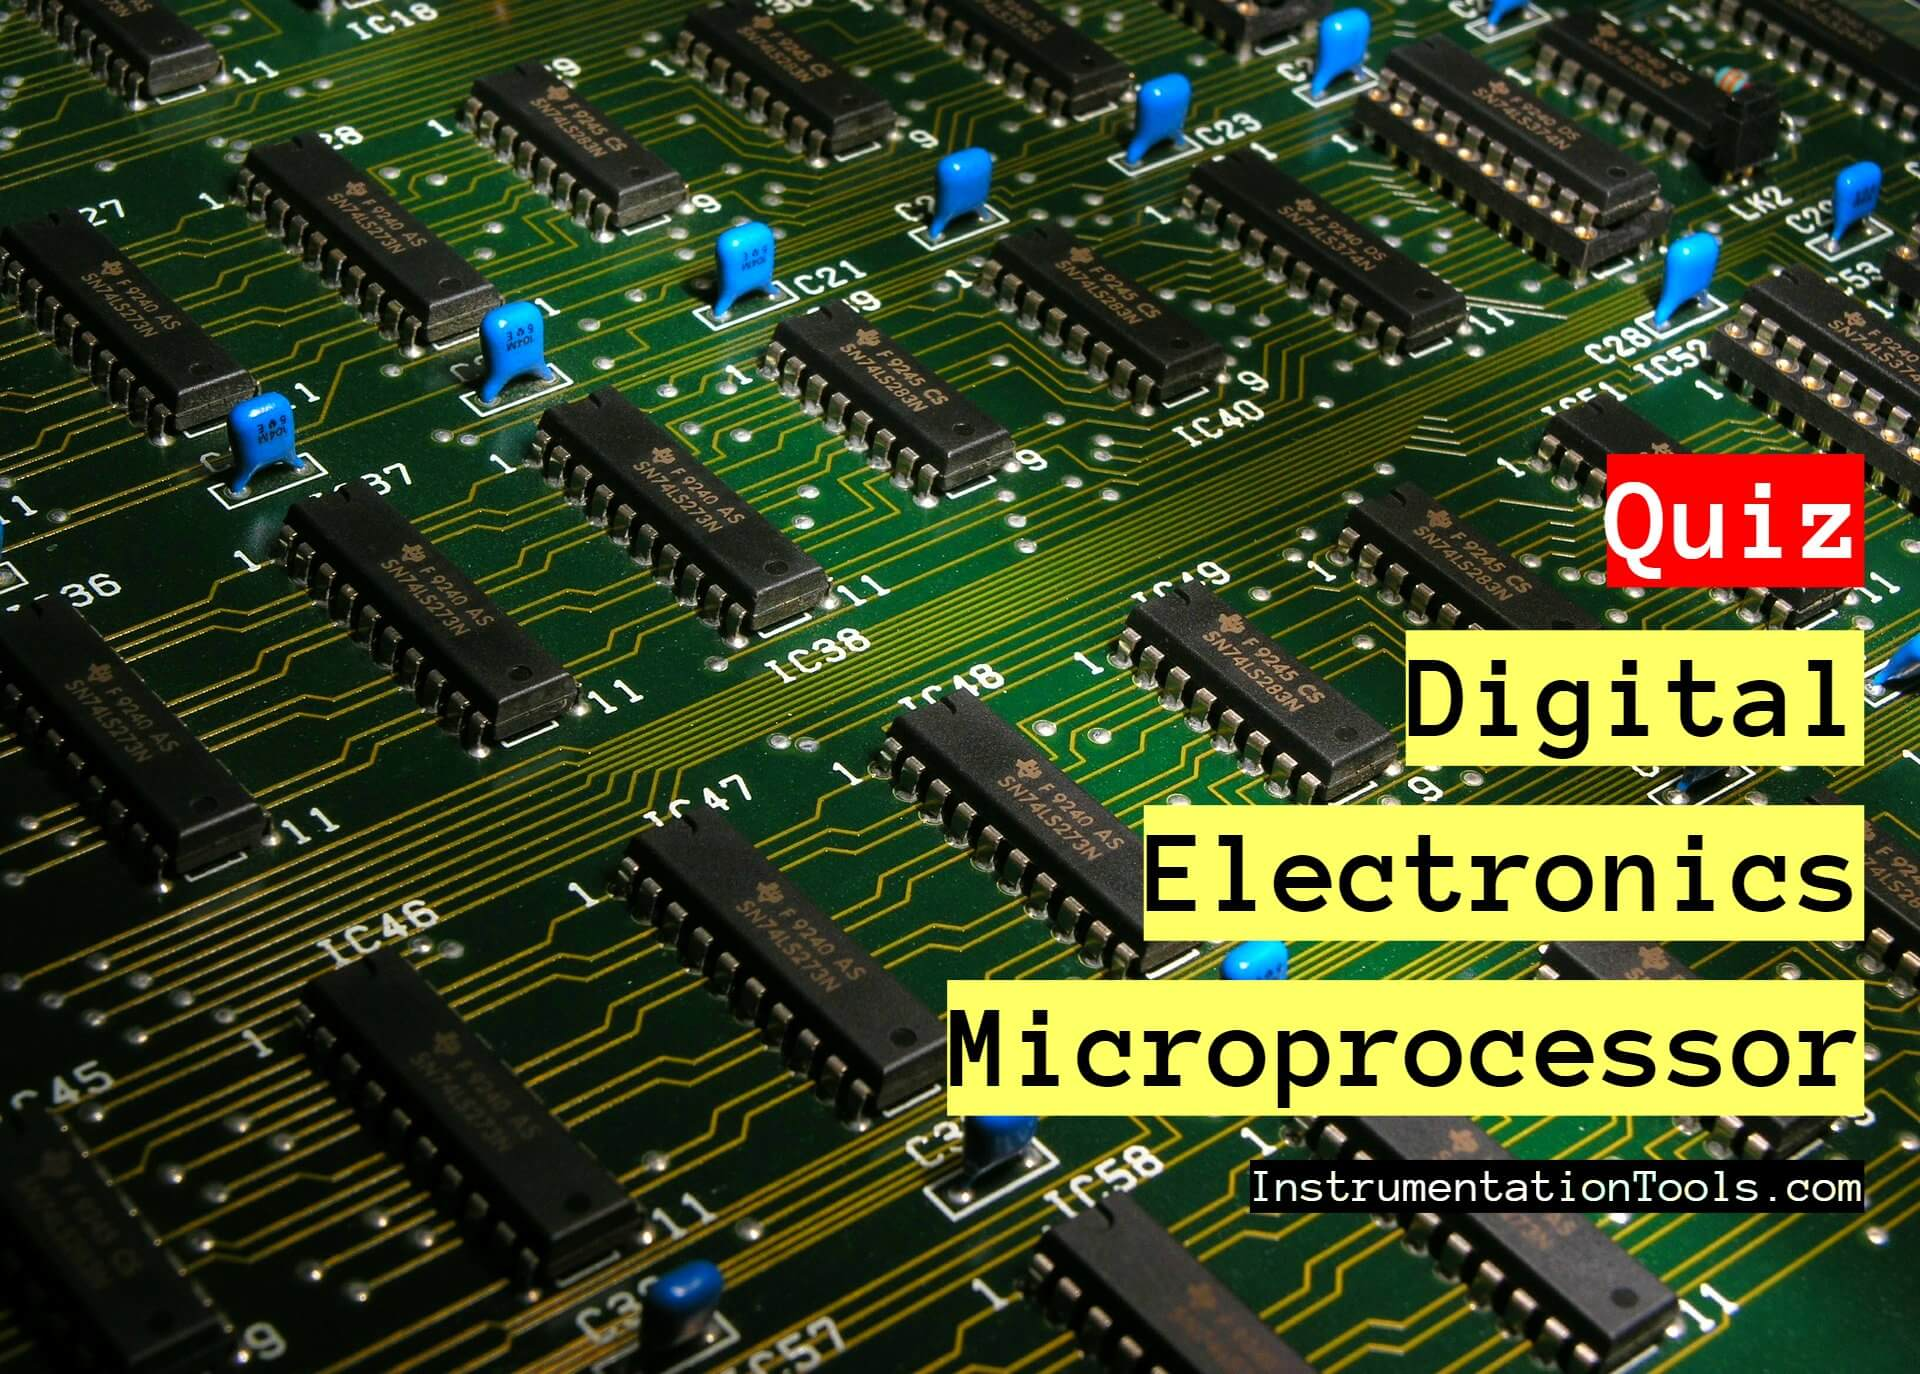 100 Digital Electronics and Microprocessor Questions for Practice Exam